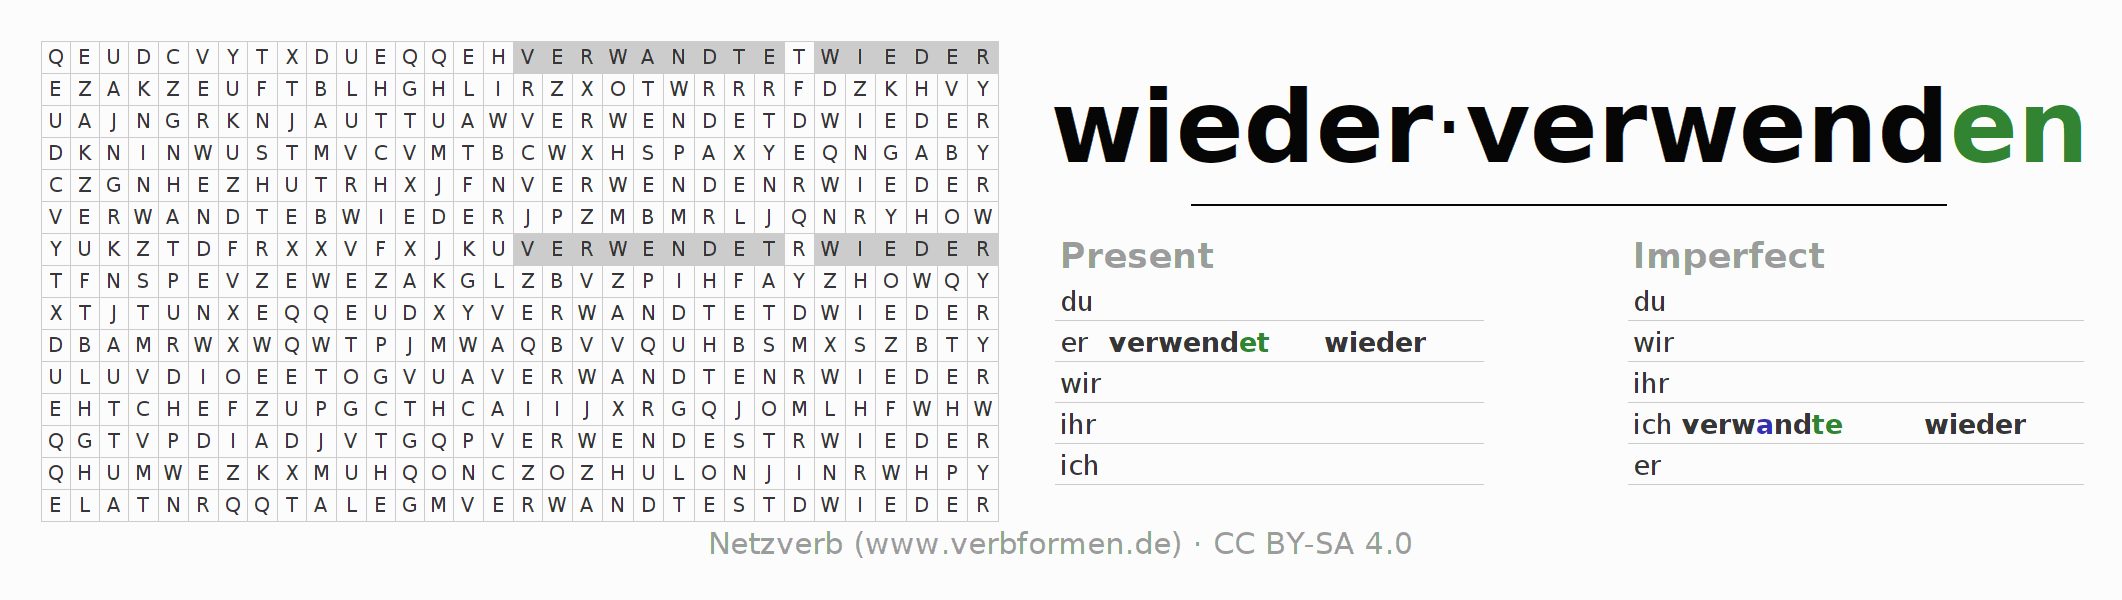 Word search puzzle for the conjugation of the verb wiederverwenden (unr)